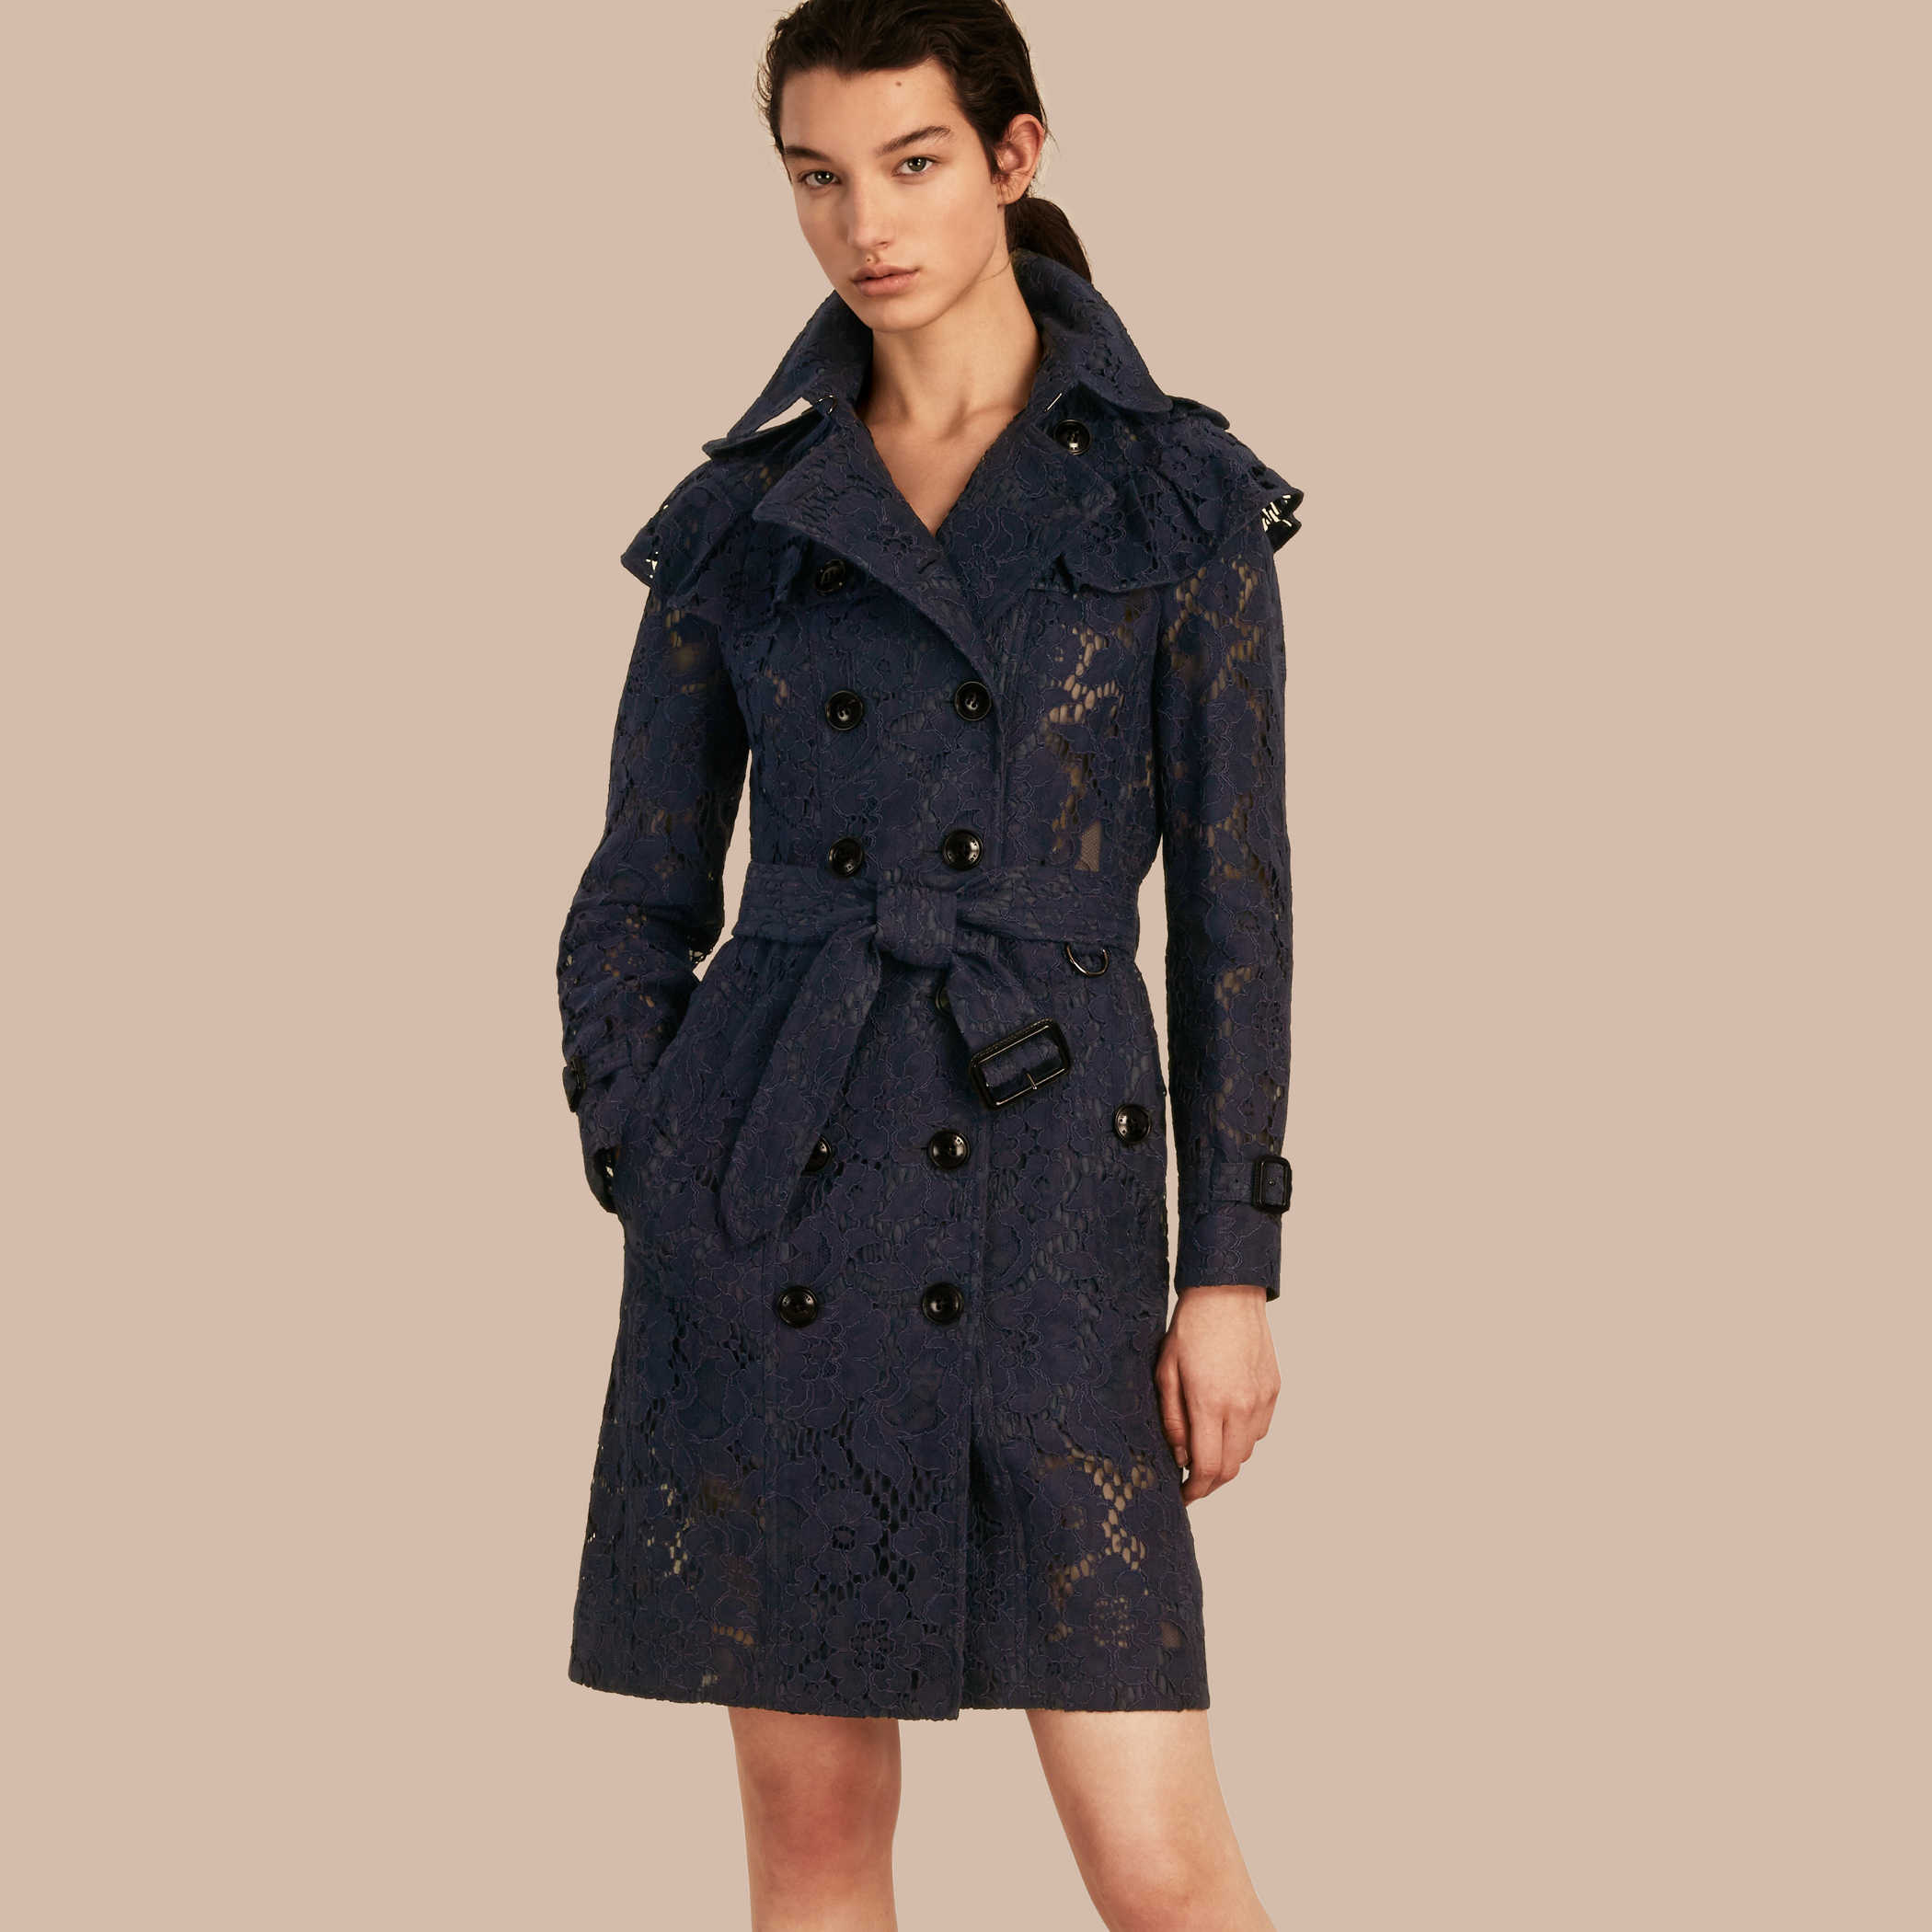 Burberry  Ruffle Detail Macramé Lace Trench Coat , £1,995 -  Not even on sale so for the eyes only but you must admit, what a beauty! Burberry still totally owns the trench!